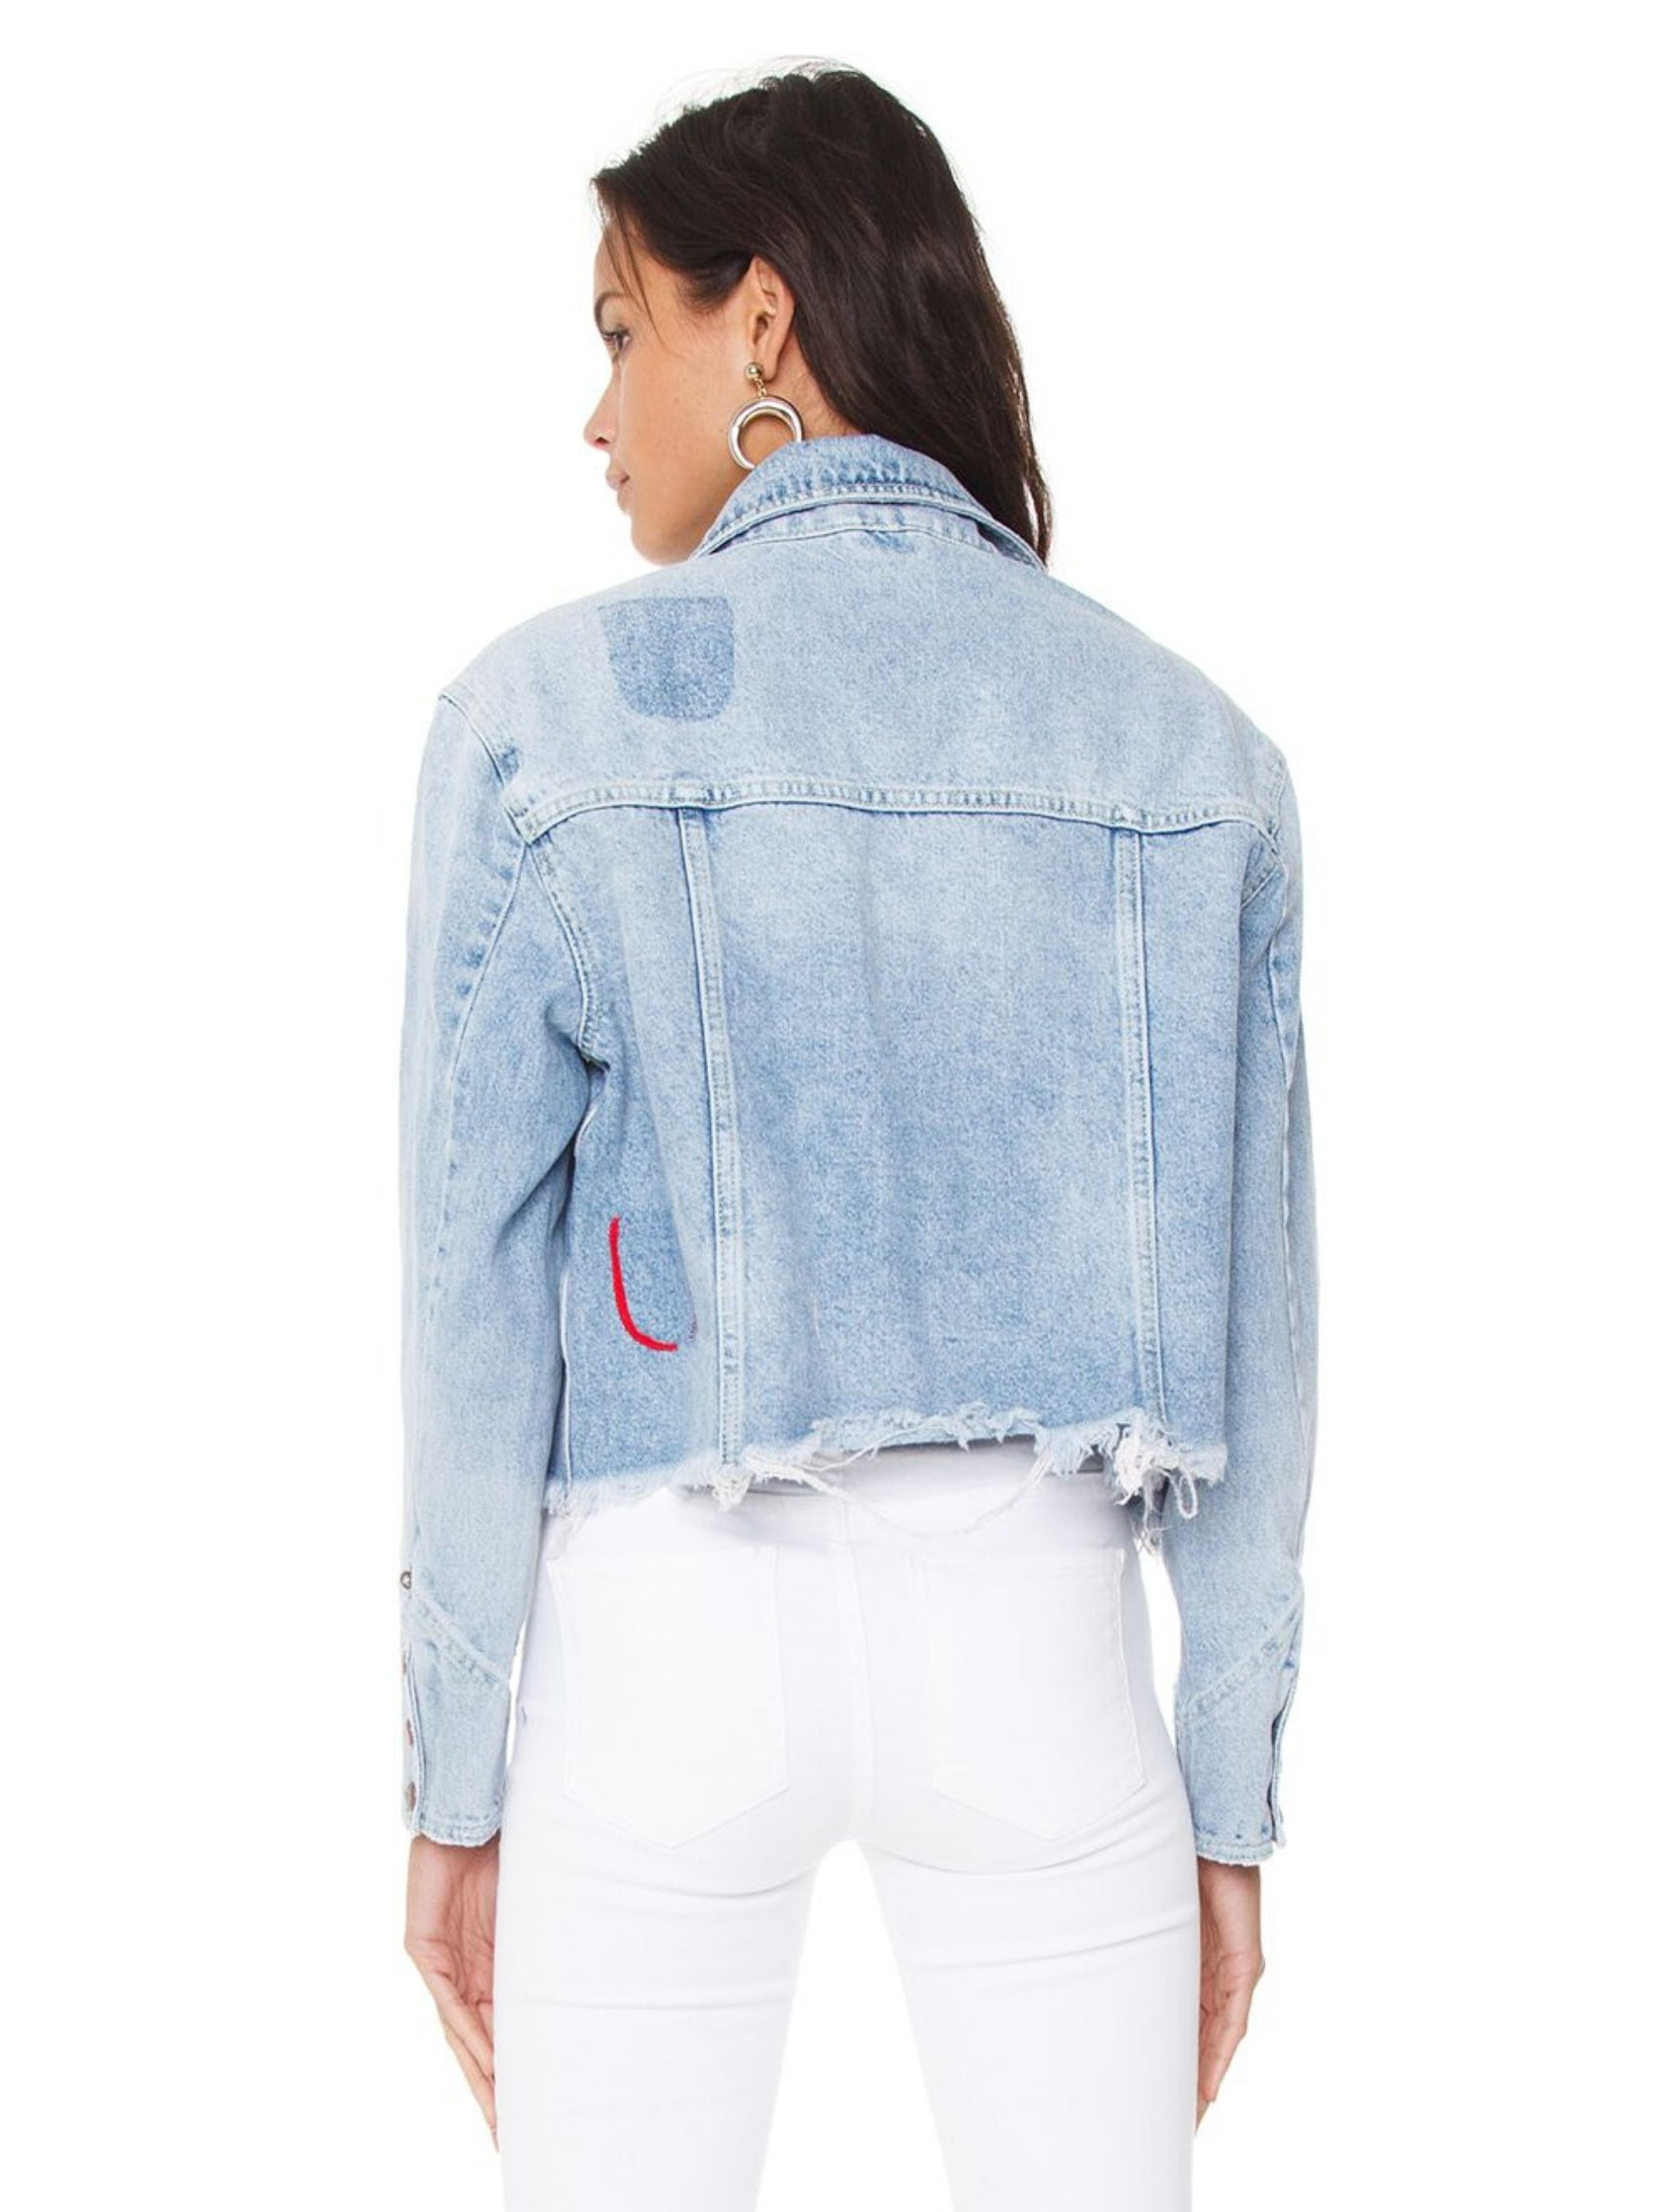 Women outfit in a jacket rental from Free People called Dillon Denim Jacket